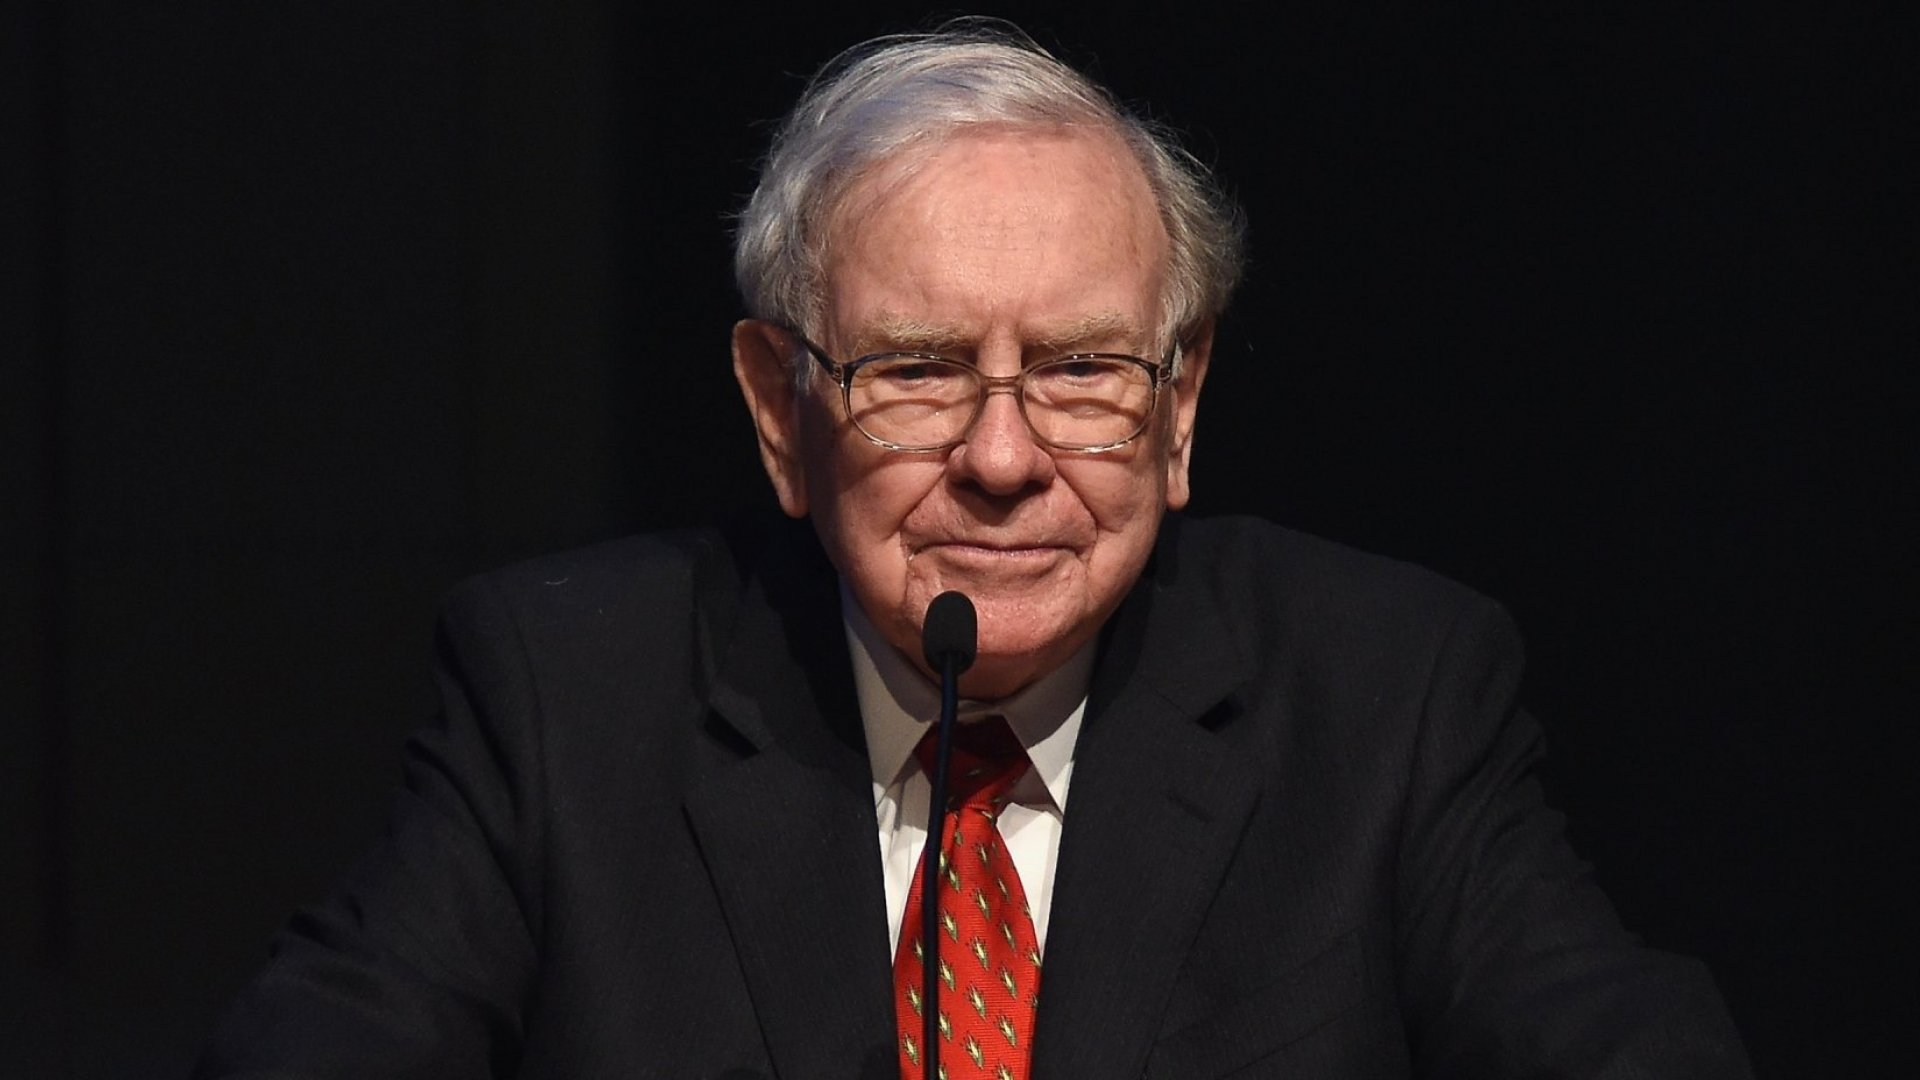 Stop Trying to Land the Perfect Job. Find the Best Leader to Work For Instead, Says Warren Buffett